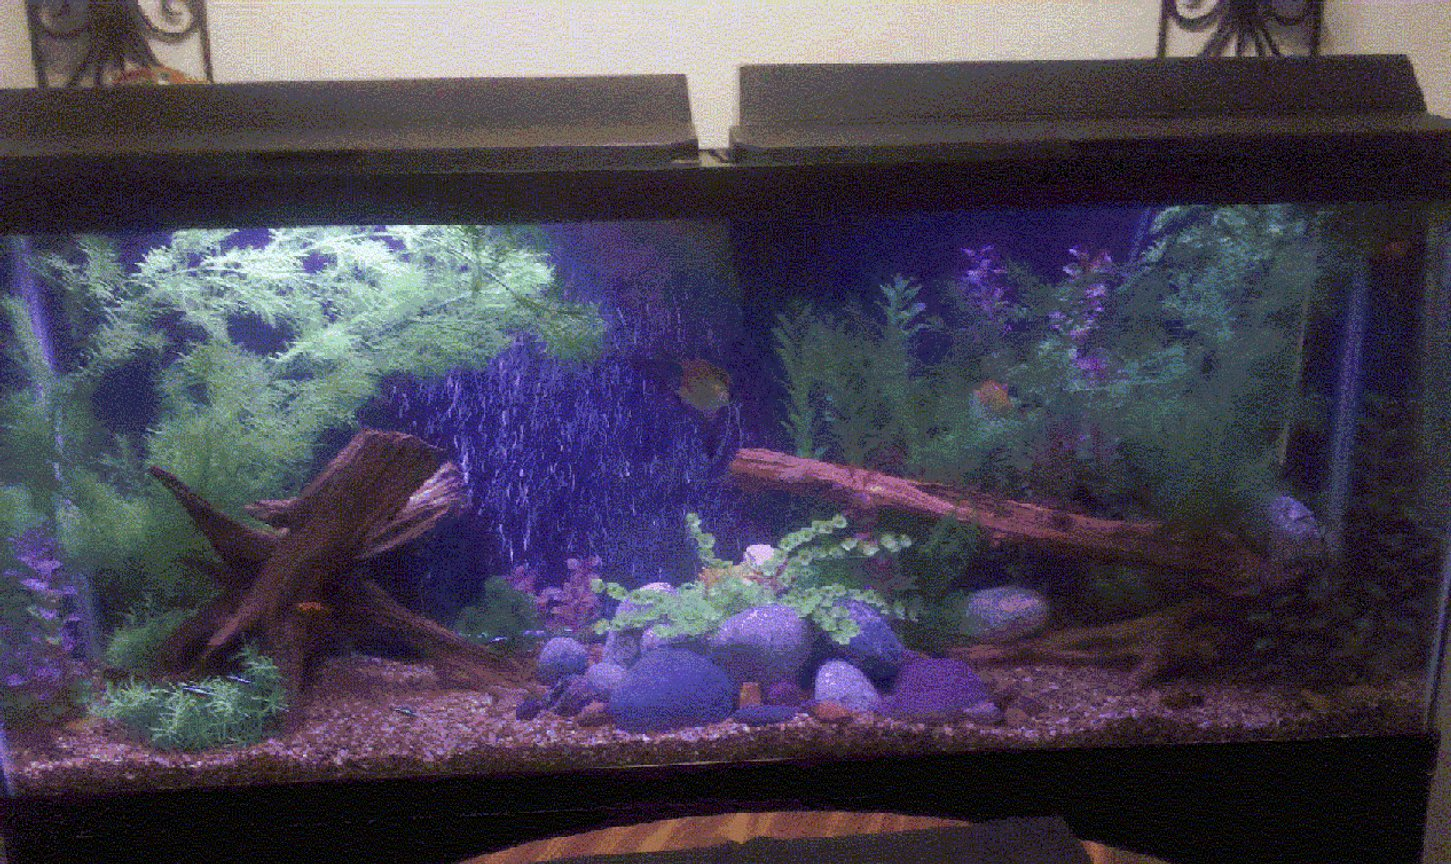 55 gallons freshwater fish tank (mostly fish and non-living decorations) - First Big Tank. Yes I know compared to the a lot of other tanks, this one is tiny. LoL